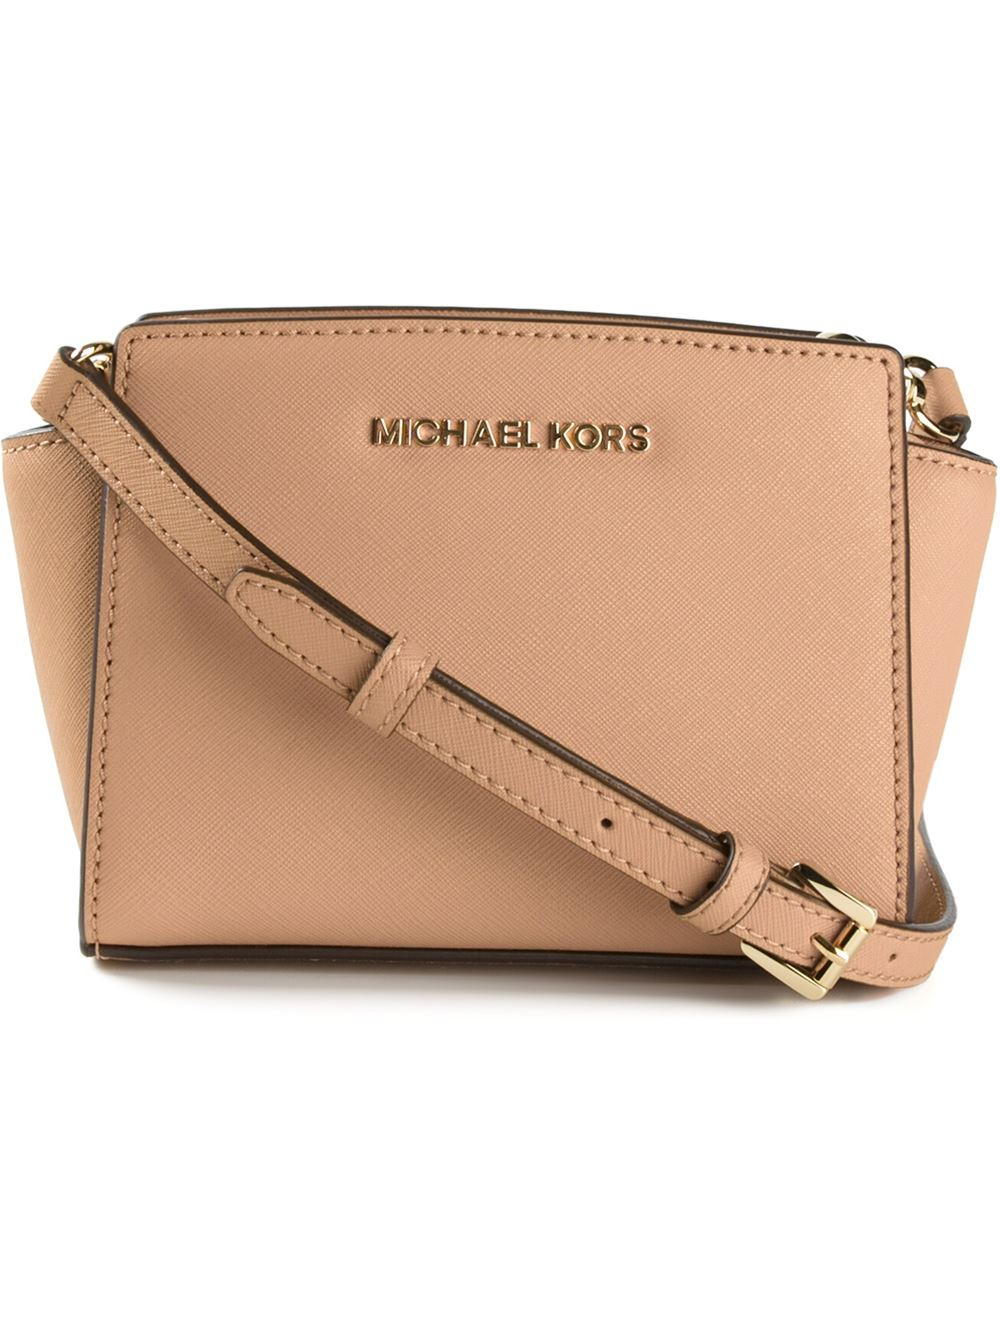 e6459876fed3 MICHAEL Michael Kors Mini Selma Cross Body Bag in Natural - Lyst